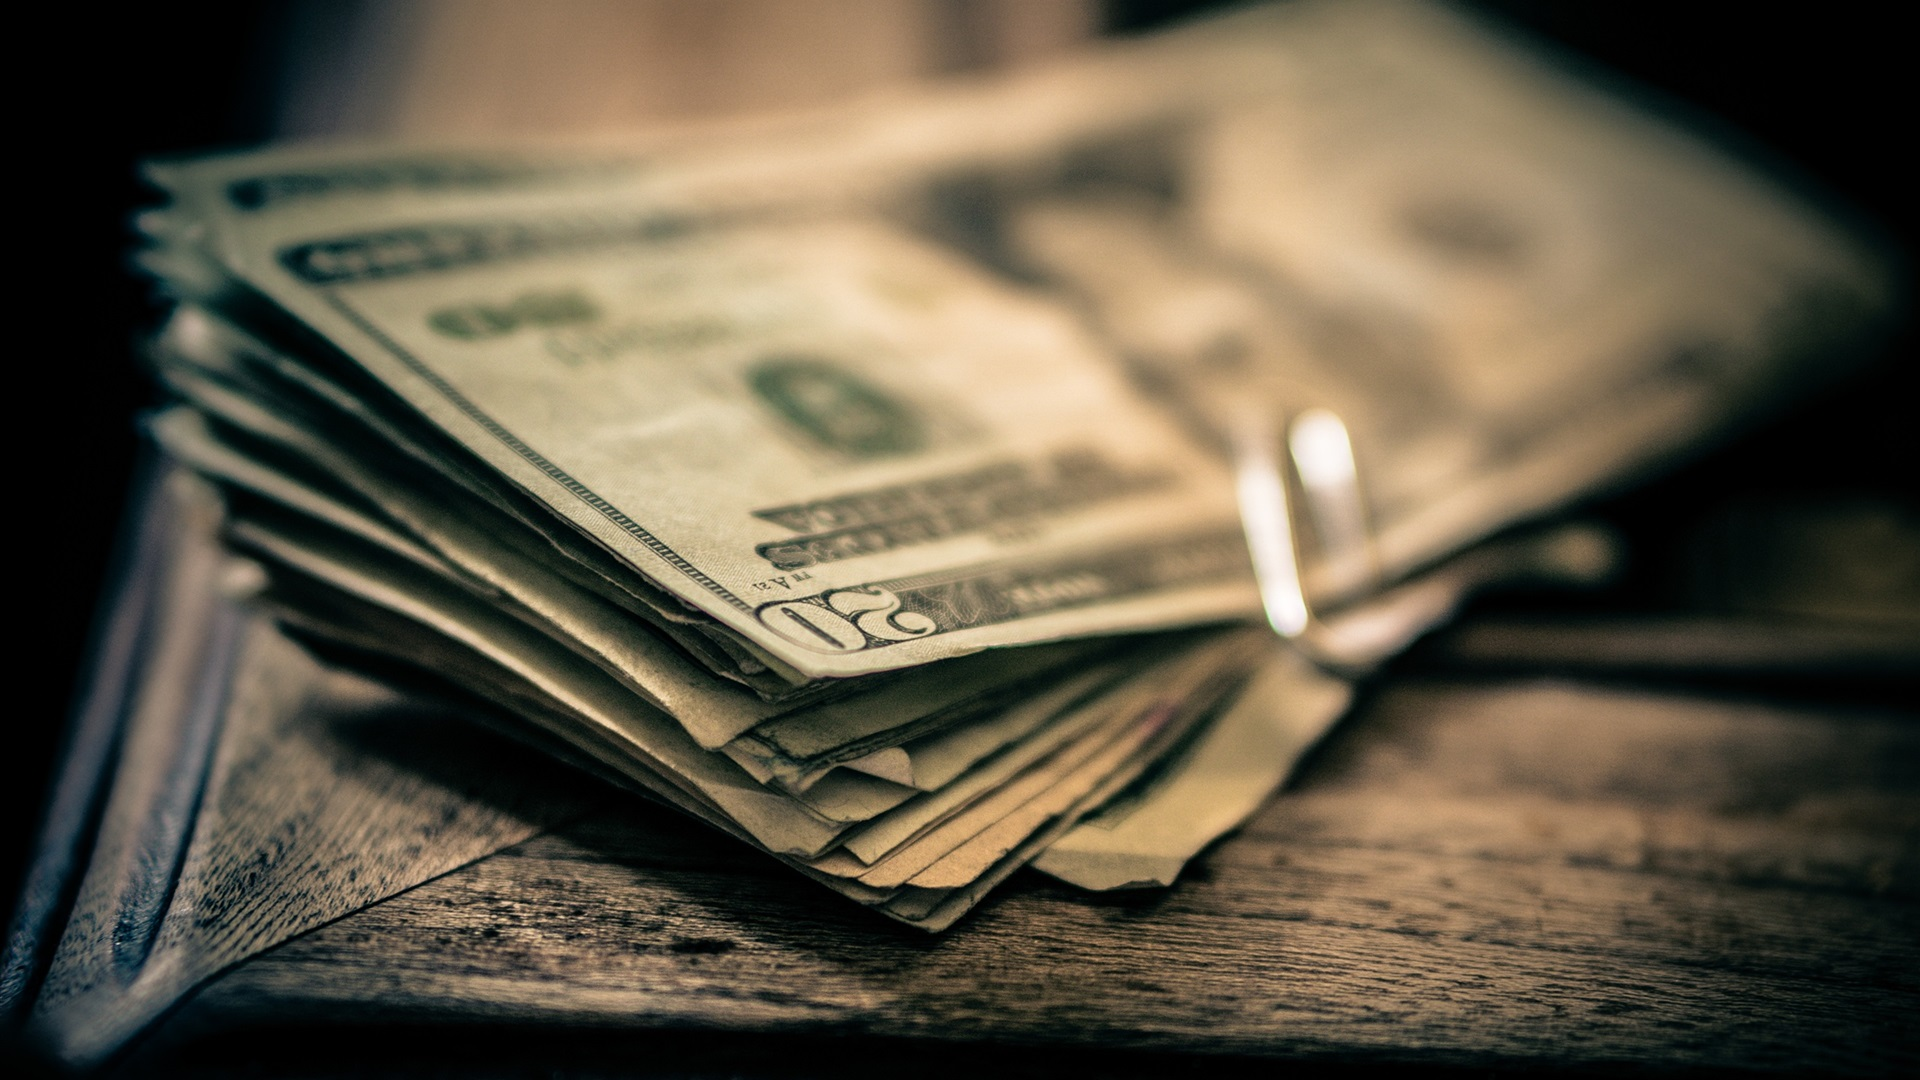 Wallpaper Money, dollars 2560x1600 HD Picture, Image